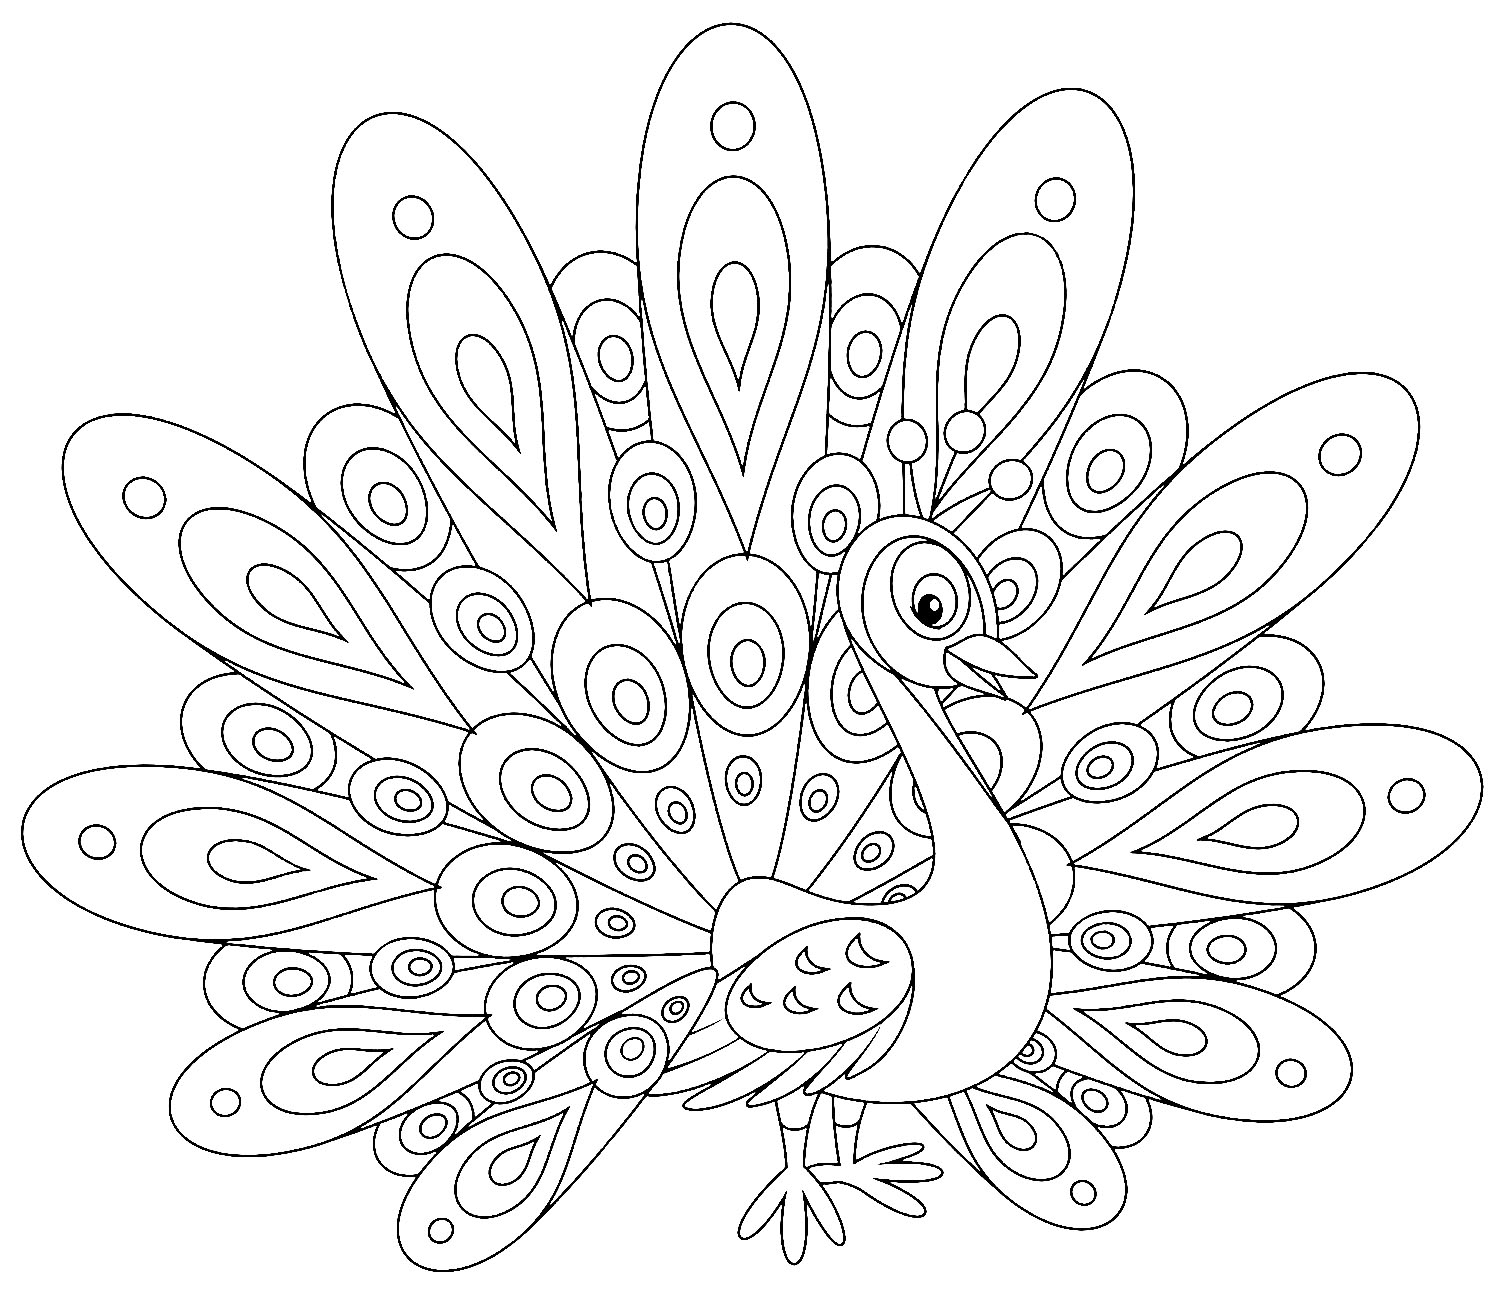 easy printable peacock coloring pages free printable peacock coloring pages for kids easy pages coloring peacock printable